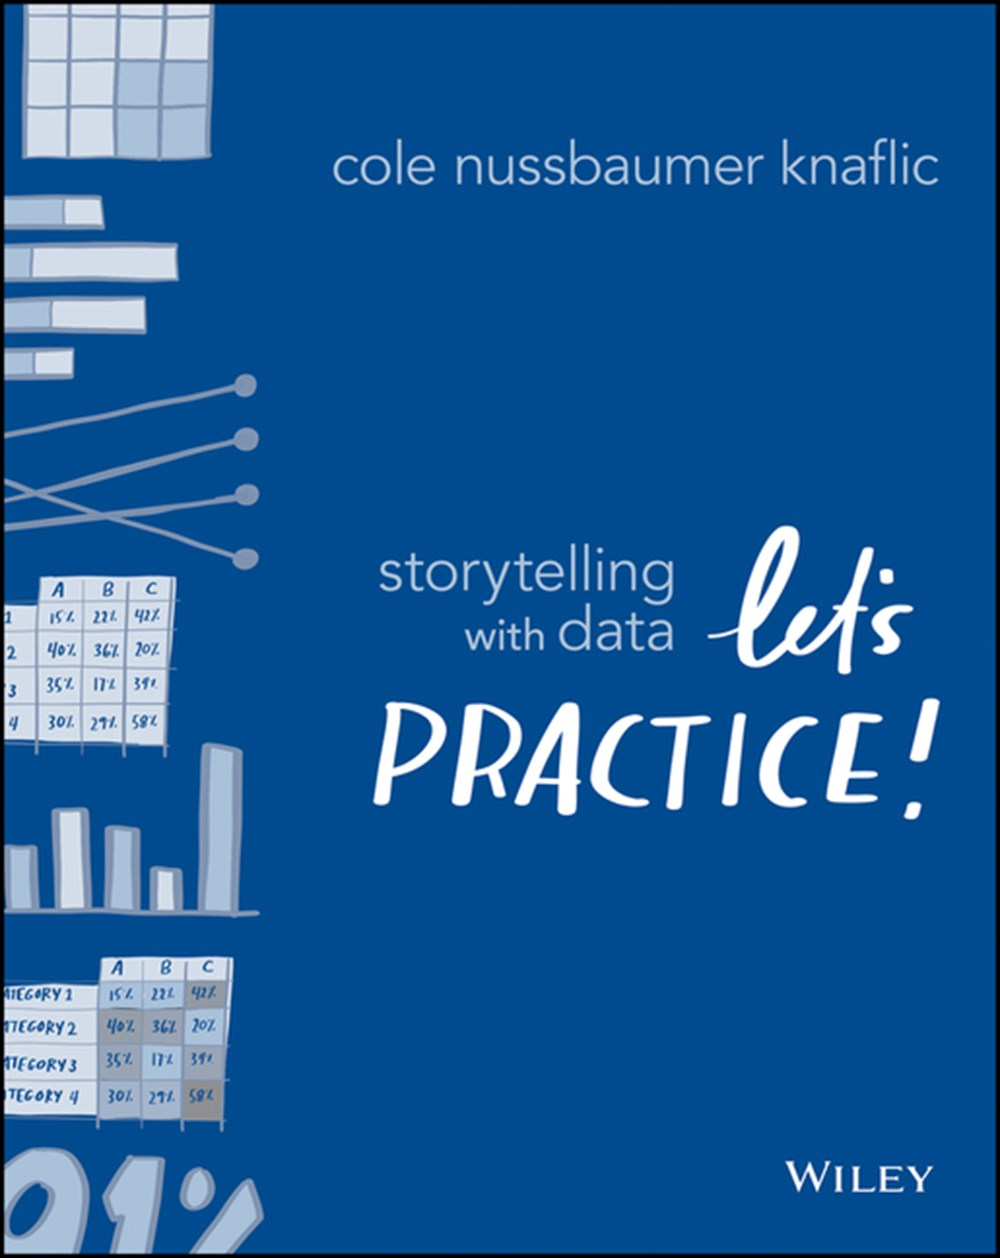 Storytelling with Data Let's Practice!